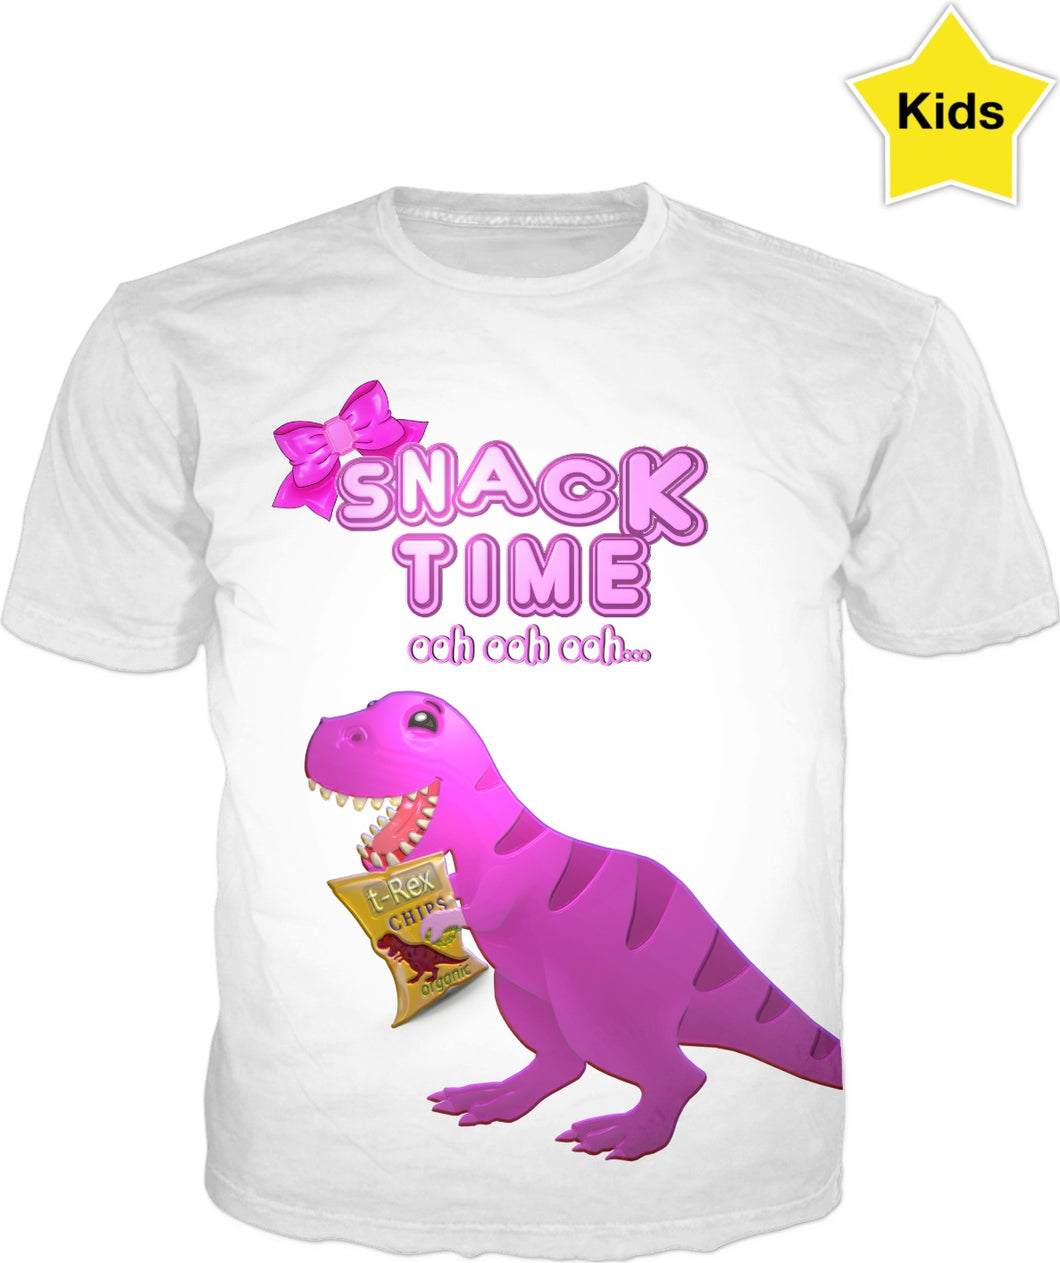 Snack Time ooh ooh ooh Chip The T-Rex Kids Girl Shirt